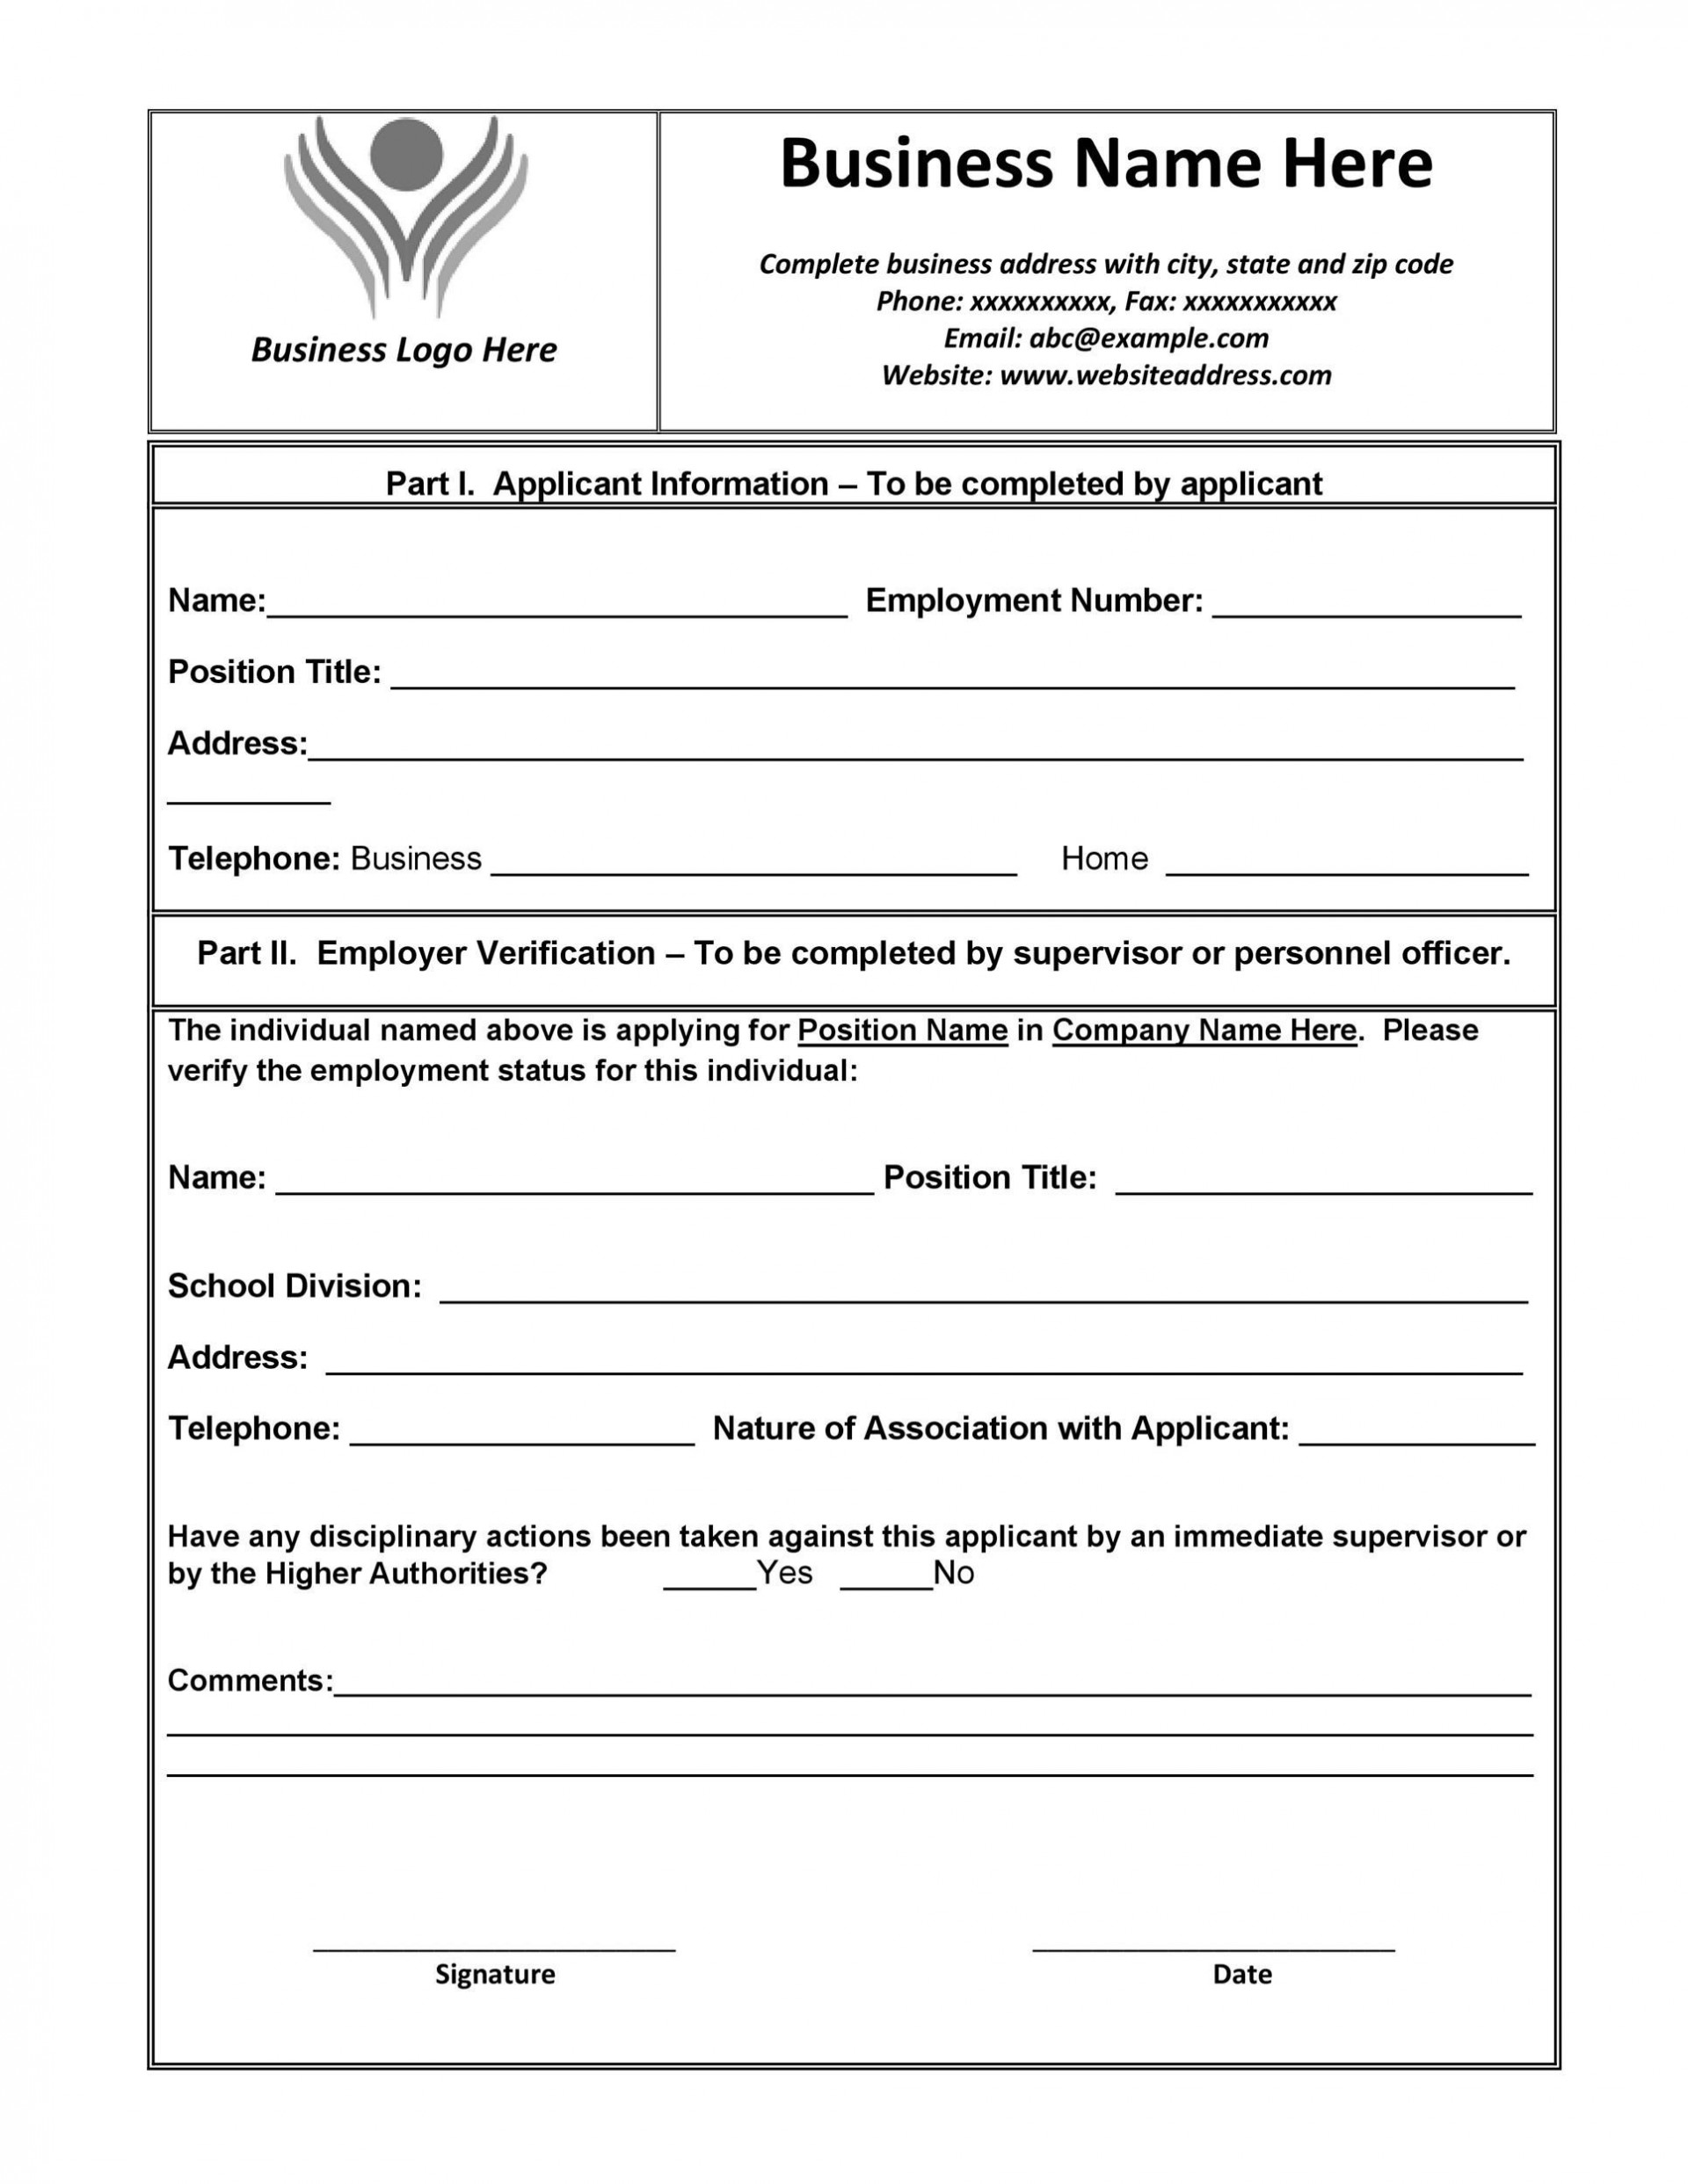 008 Fearsome Background Check Form Template Free Example  Authorization1920